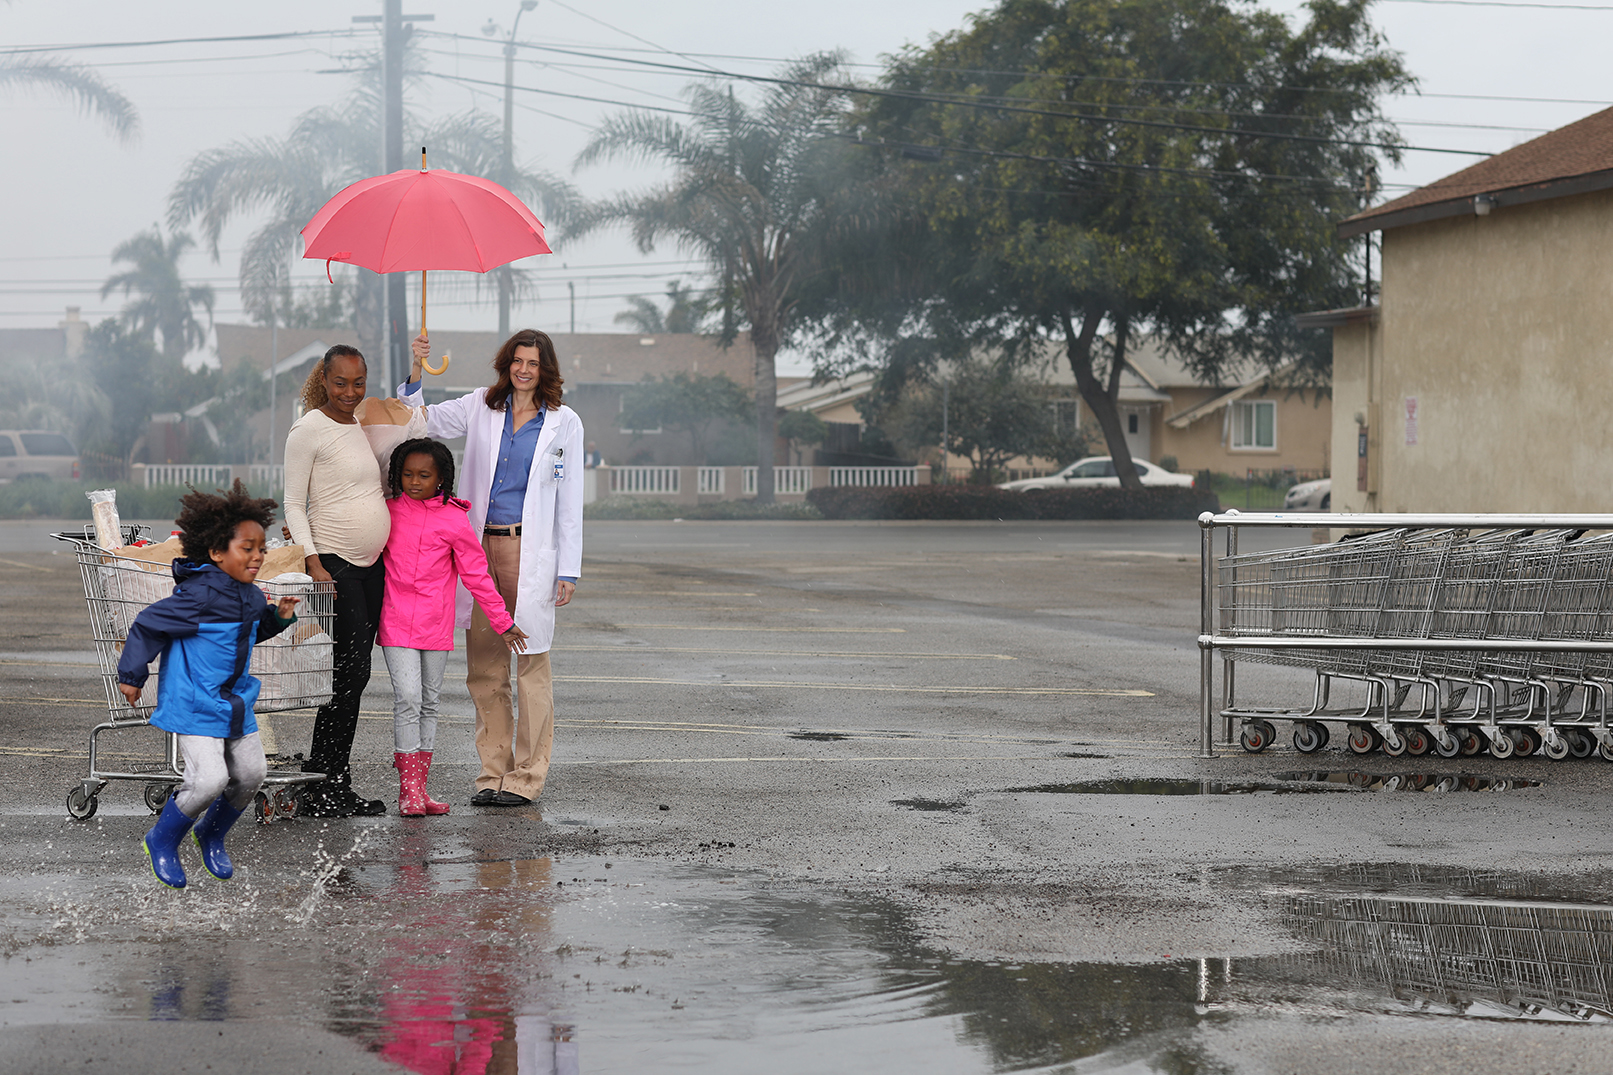 female doctor holding a pink umbrella over a family of three in rainy parking lot